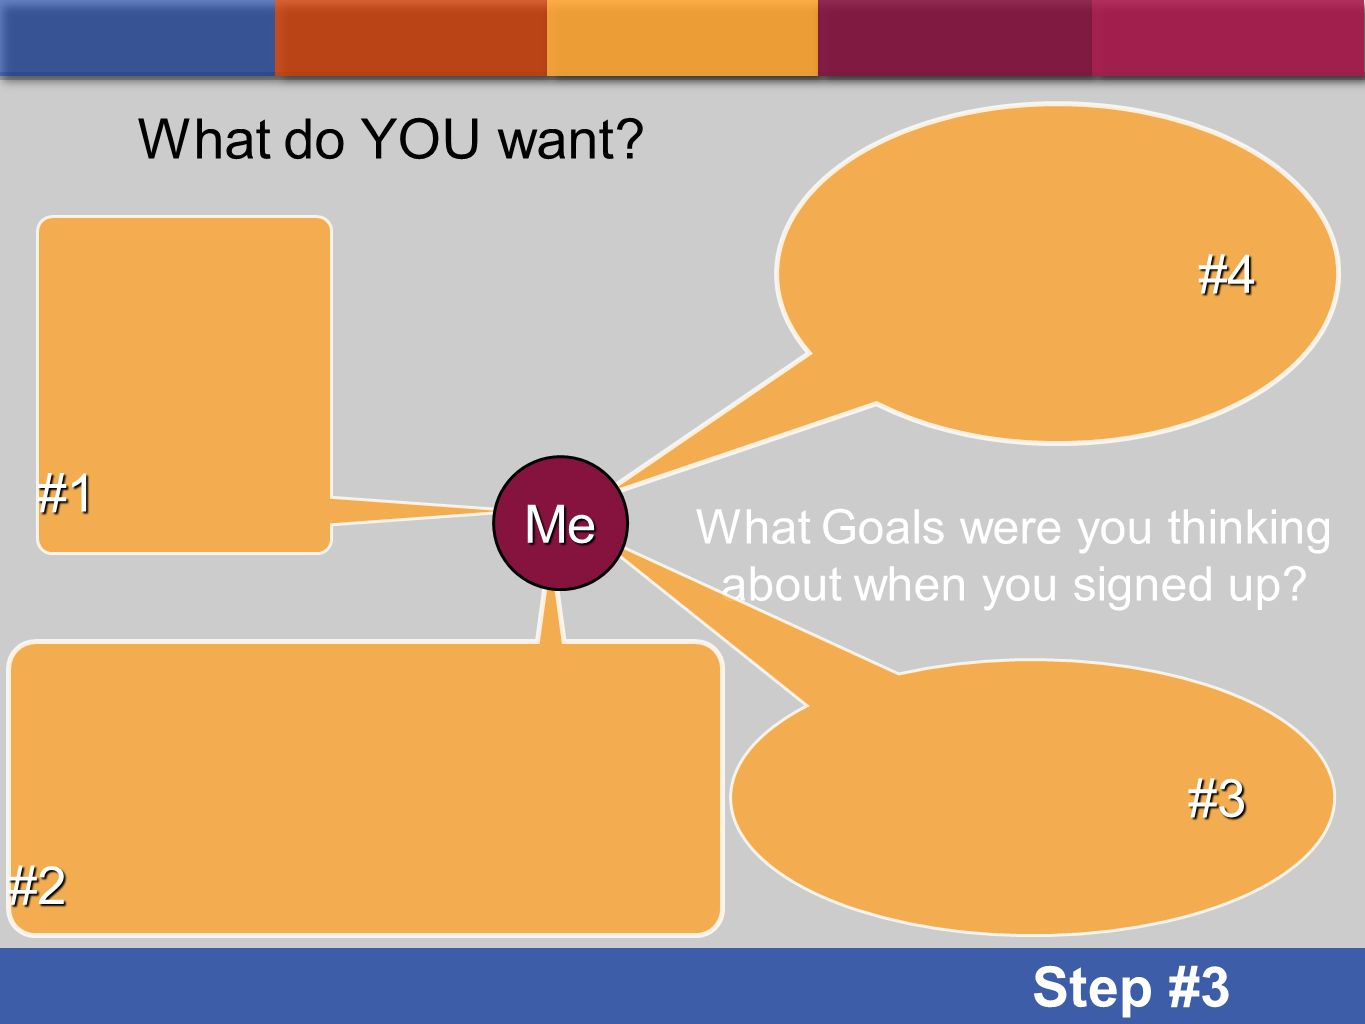 What Goals were you thinking about when you signed up